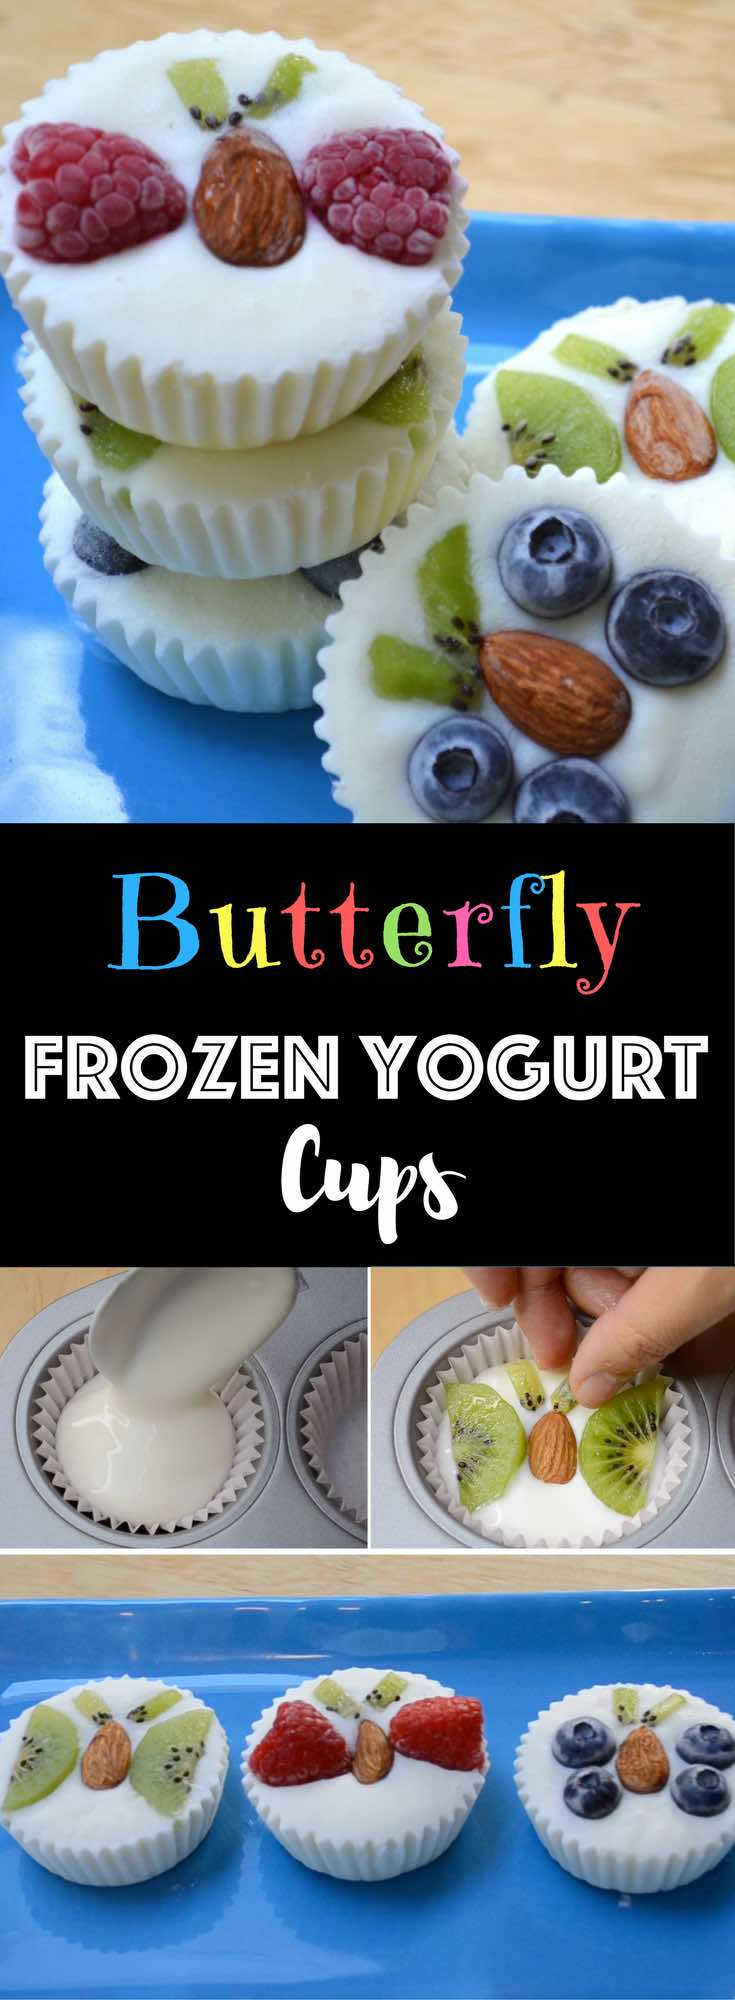 Healthy Fruity Frozen Yogurt Snacks – An easy and refreshing dessert that's good for you. A fun way to enjoy FroYo! These creamy frozen yogurt bites come with fruits shaped into butterflies. All you need is your favorite yogurt, some fruits and almonds. So delicious and so fun! Quick and easy recipe. Kids friendly. Video recipe.